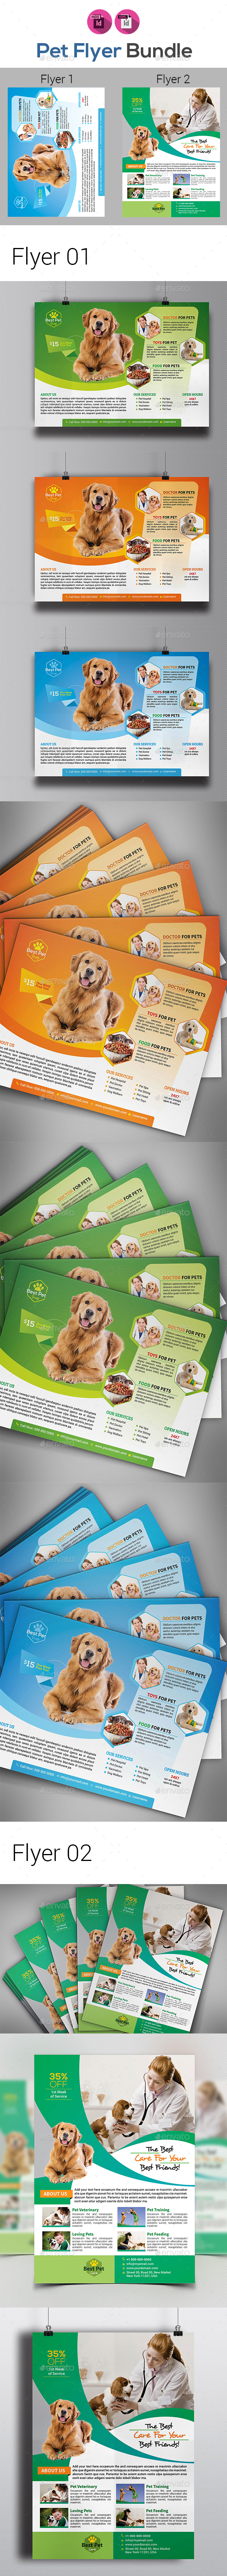 Pet Shop Flyers Templates - Corporate Flyers